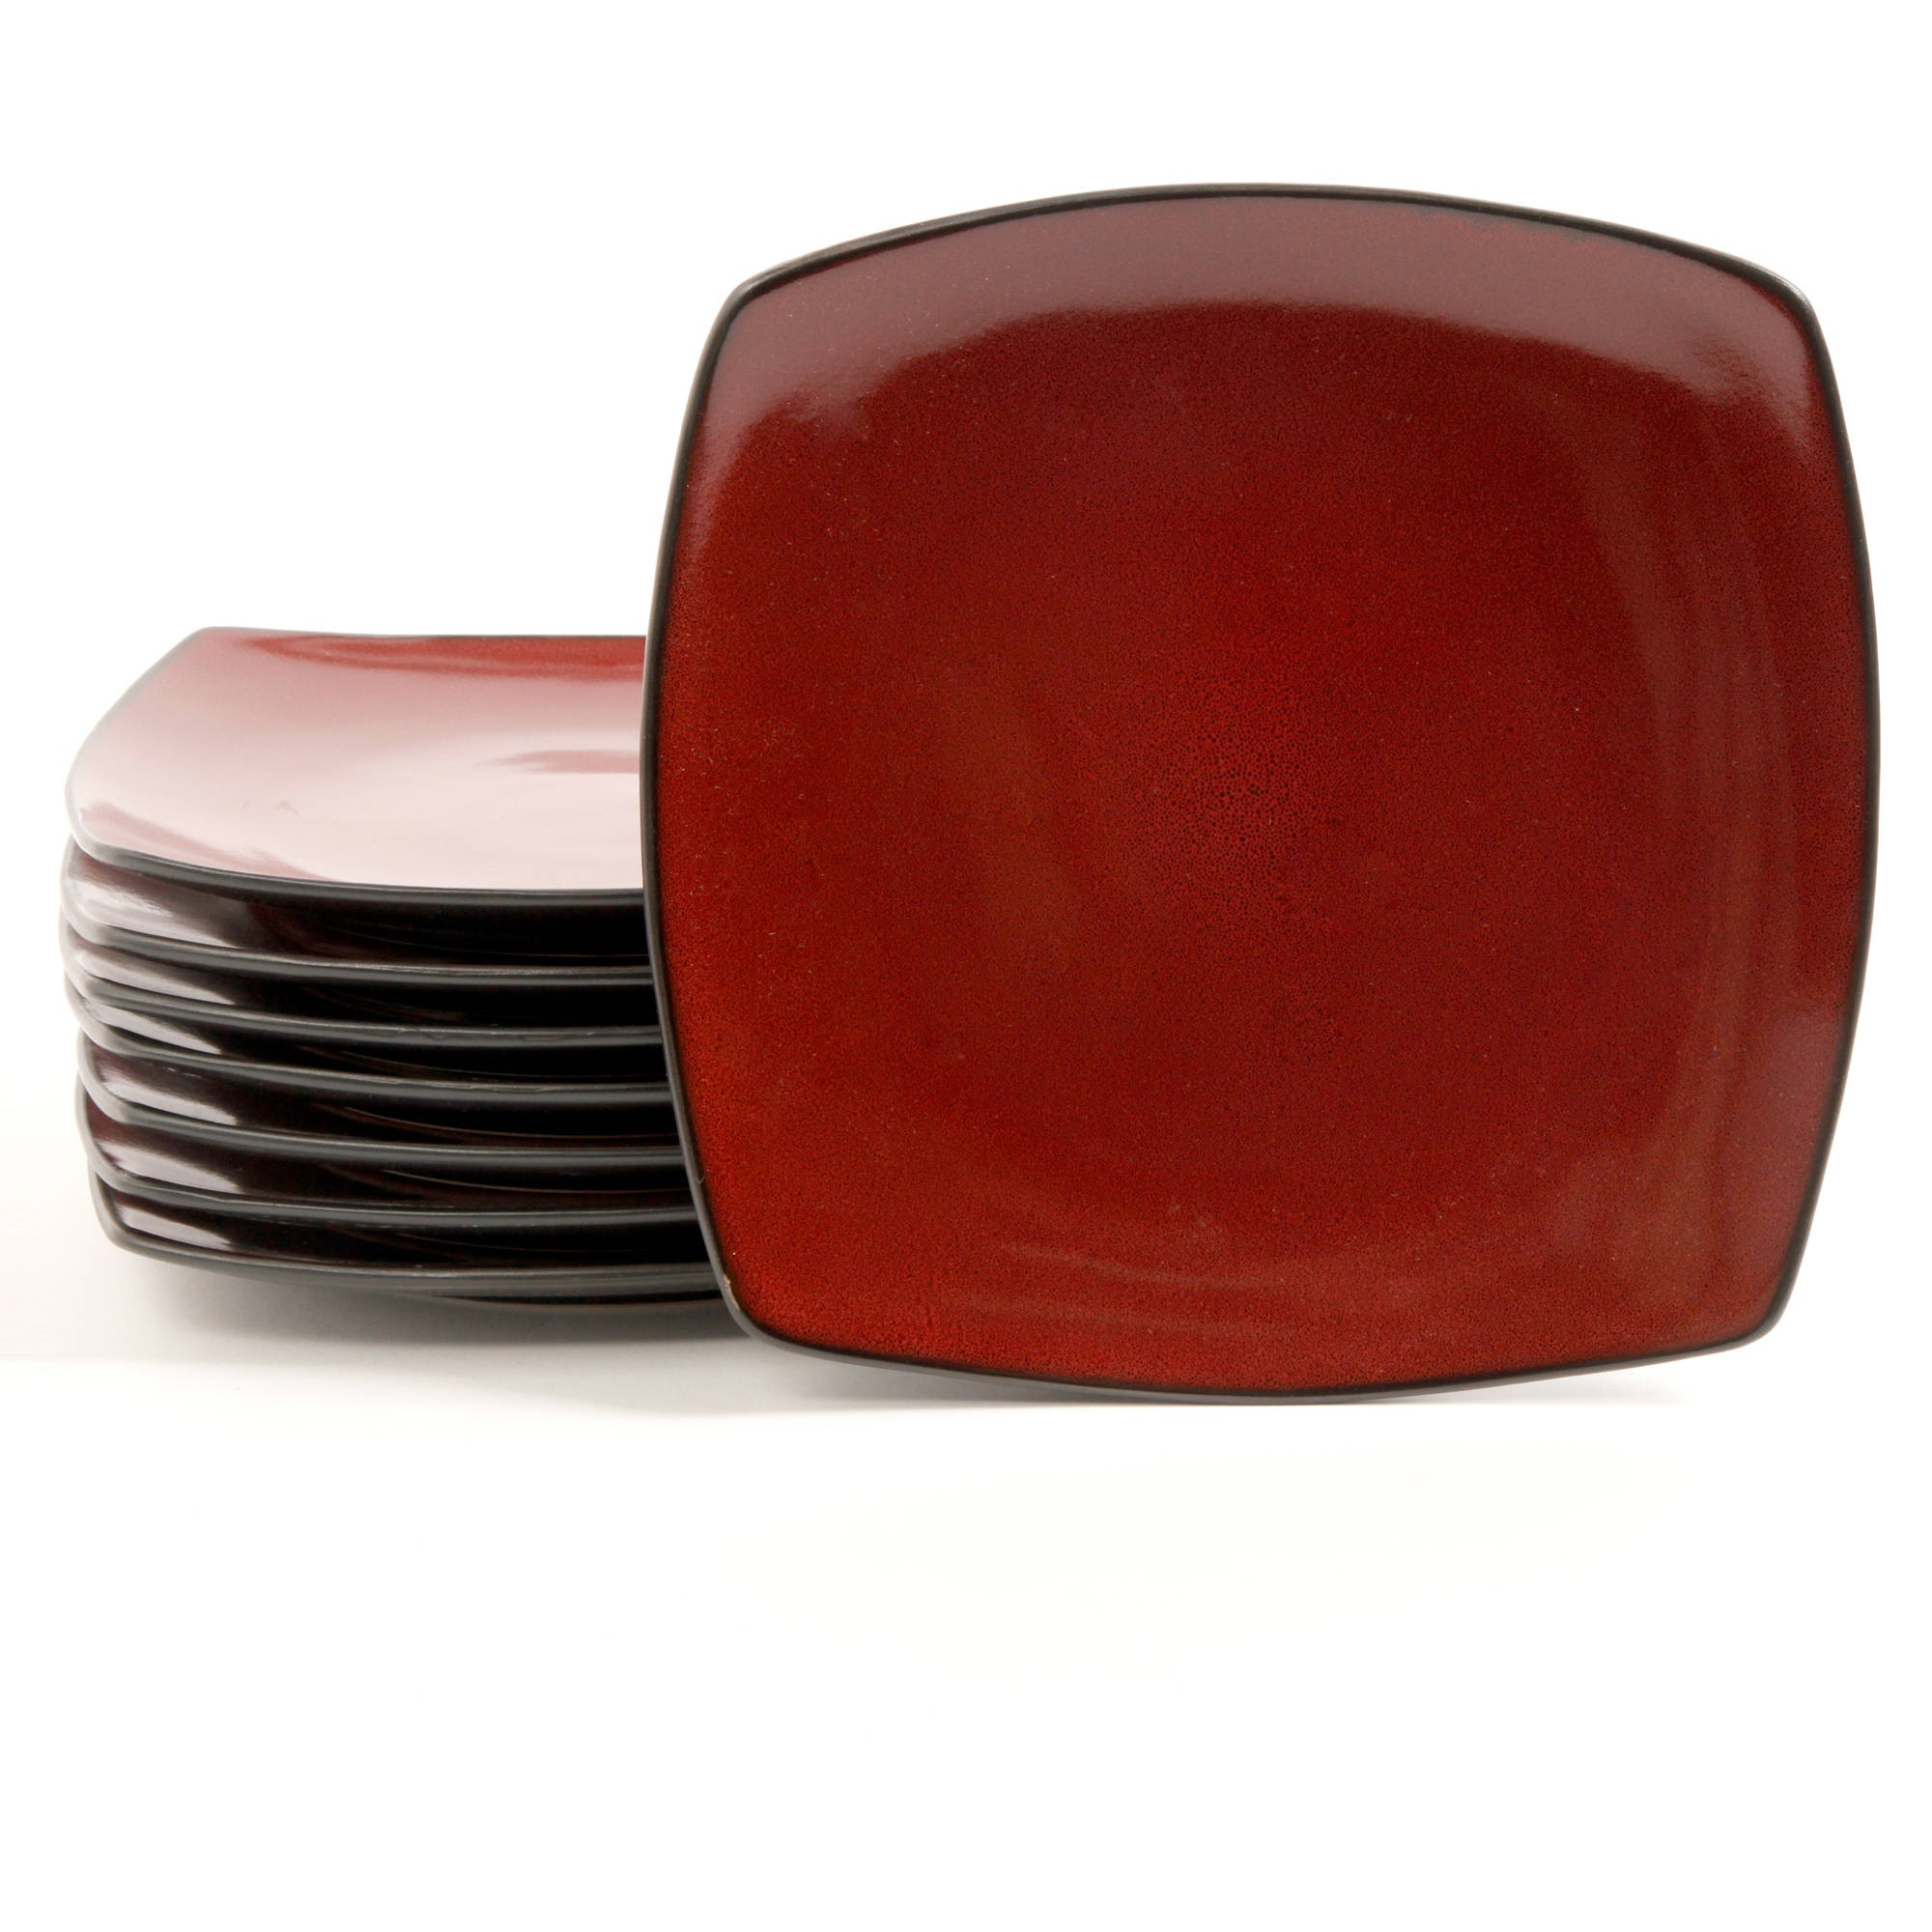 Gibson Home Soho Lounge 10 5 Square Dinner Plates Red Set Of 8  sc 1 st  Best Image Engine & Scintillating Red Square Plastic Dinner Plates Ideas - Best Image ...